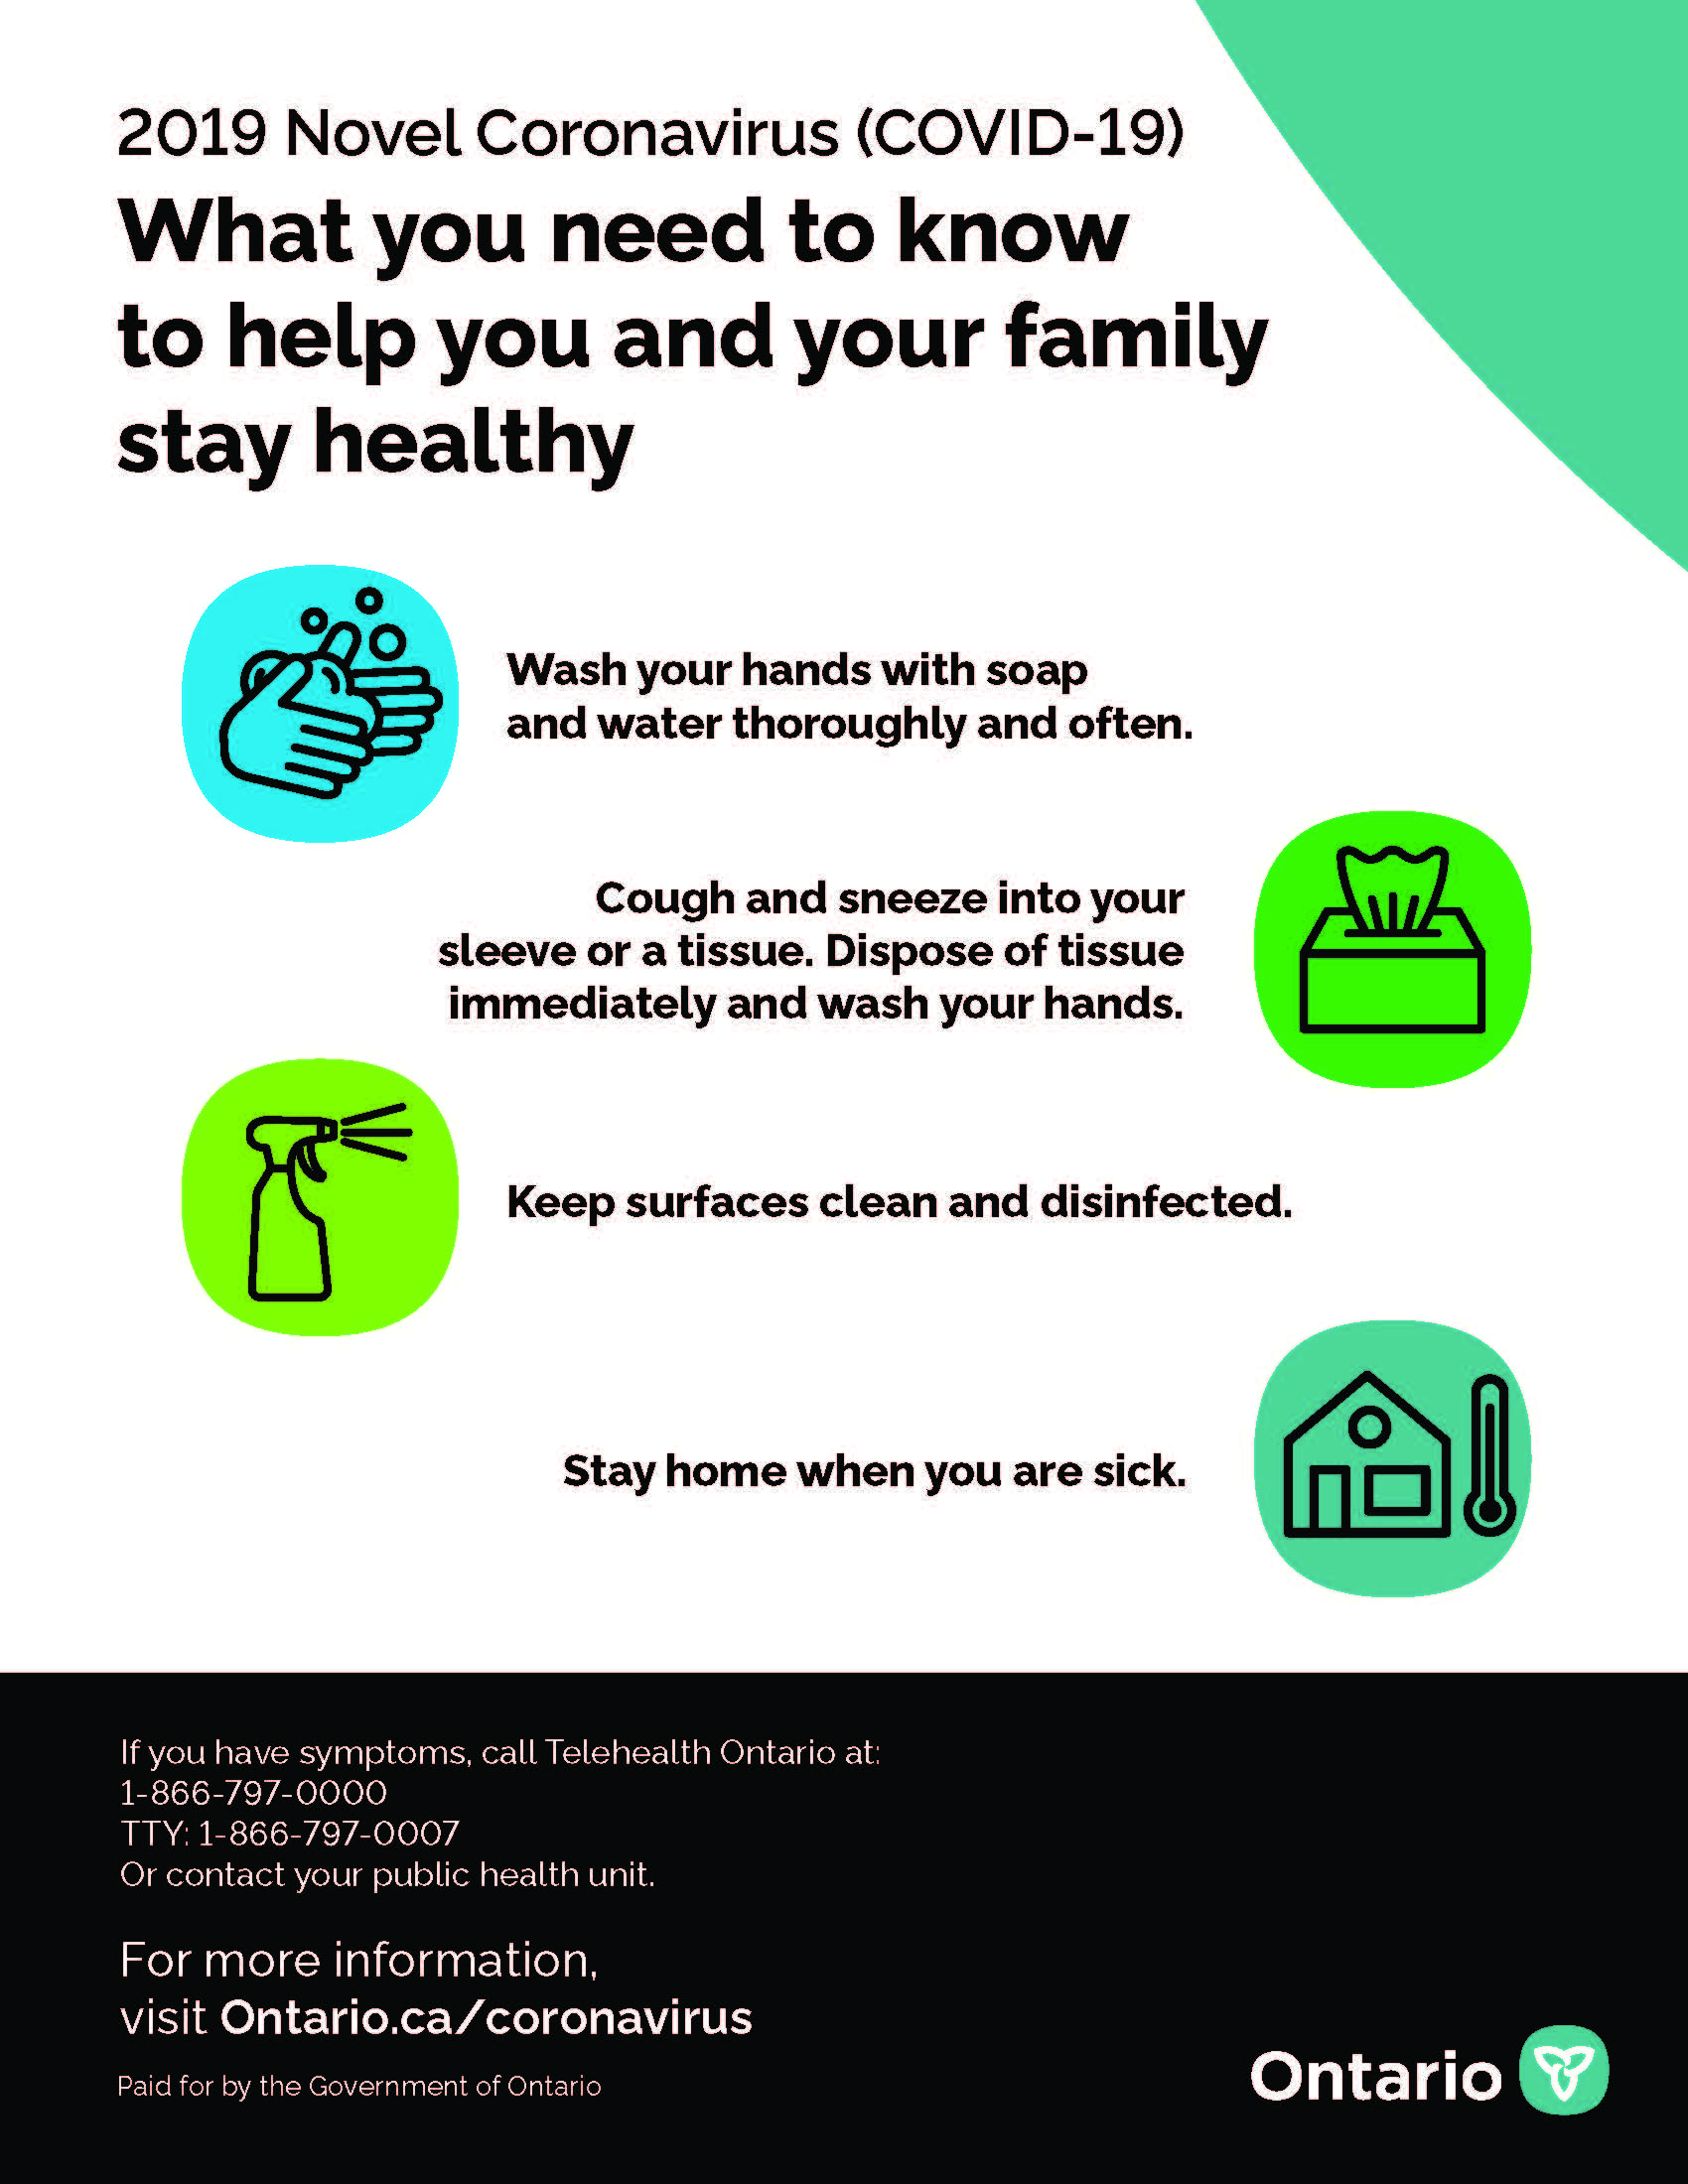 Novel Coronavirus - Helping you and your family stay healthy